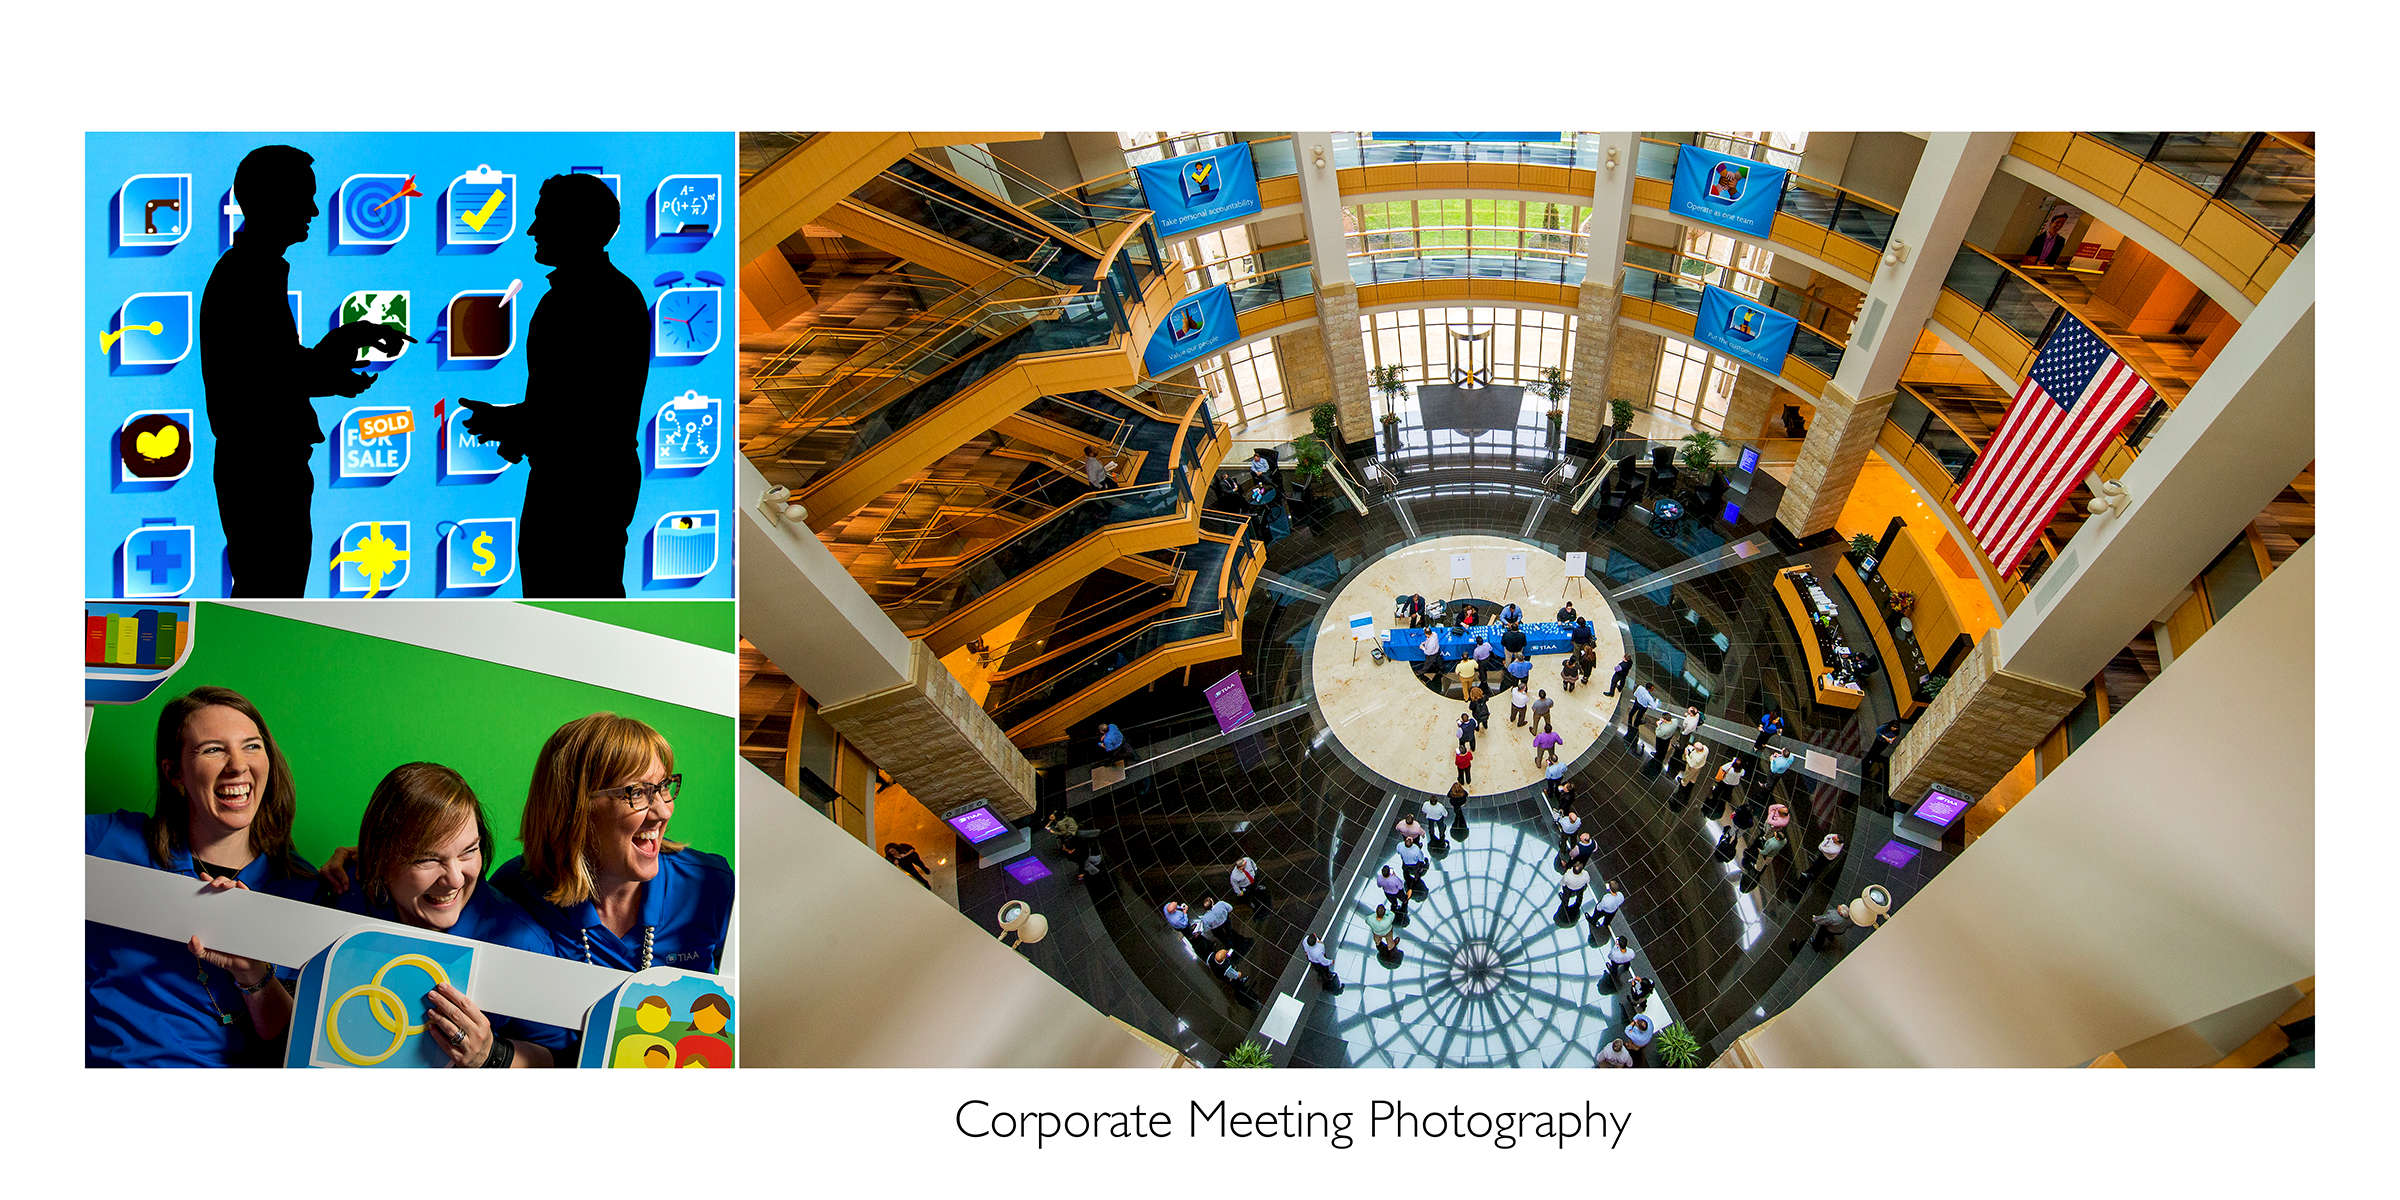 Employees of a Fortune 500 company share ideas and laughter during a corporate meeting. Three-picture photo story: Two men are silhouetted by a giant digital screen; three women laugh while holding printed icons; and photo taken overhead of employees registering for event in the lobby.